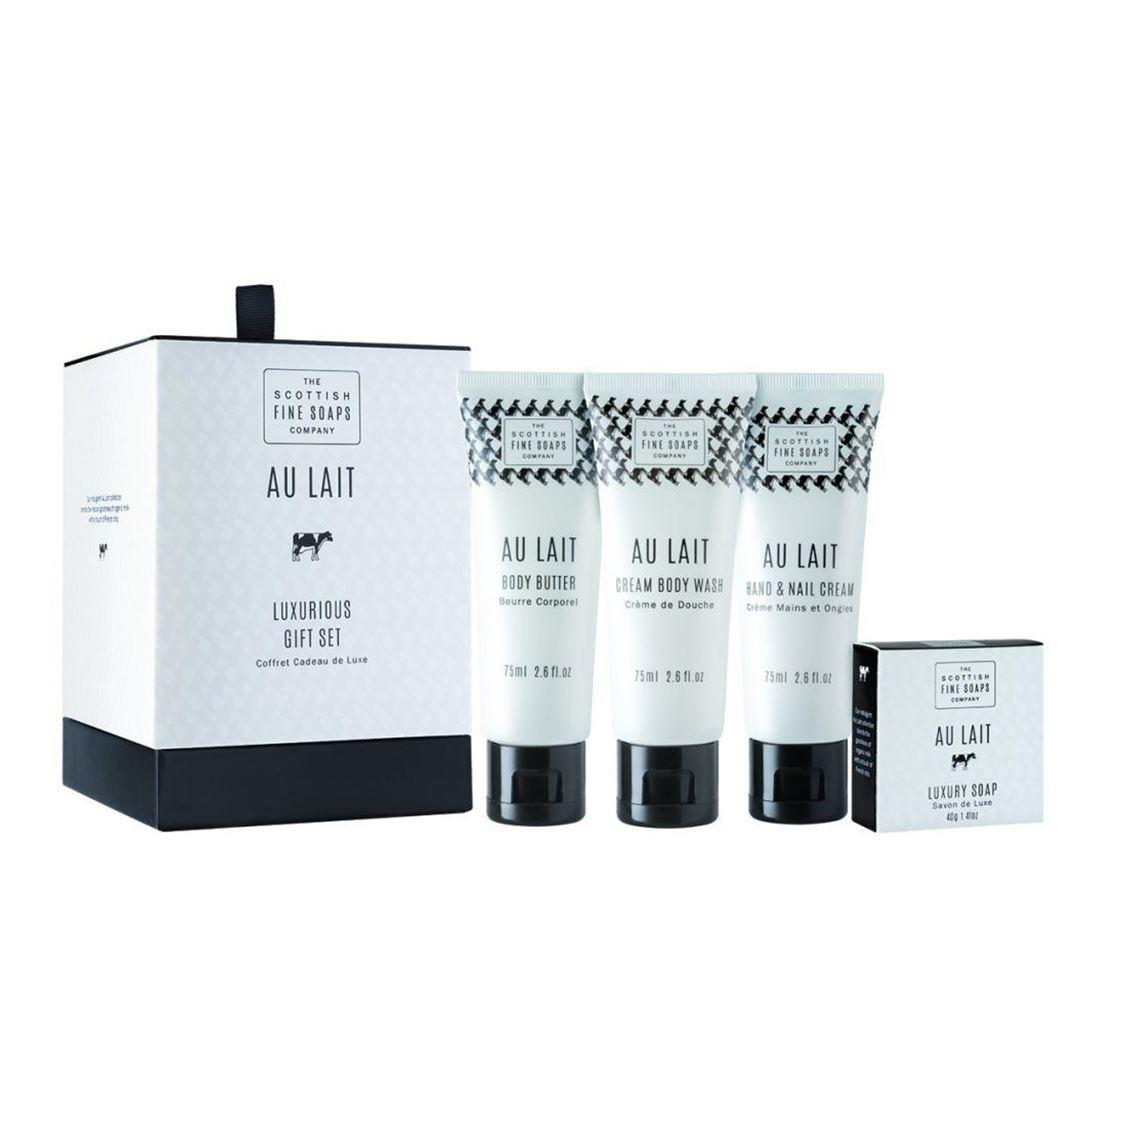 Scottish Fine Soaps Au Lait Luxurious Gift Set Drum